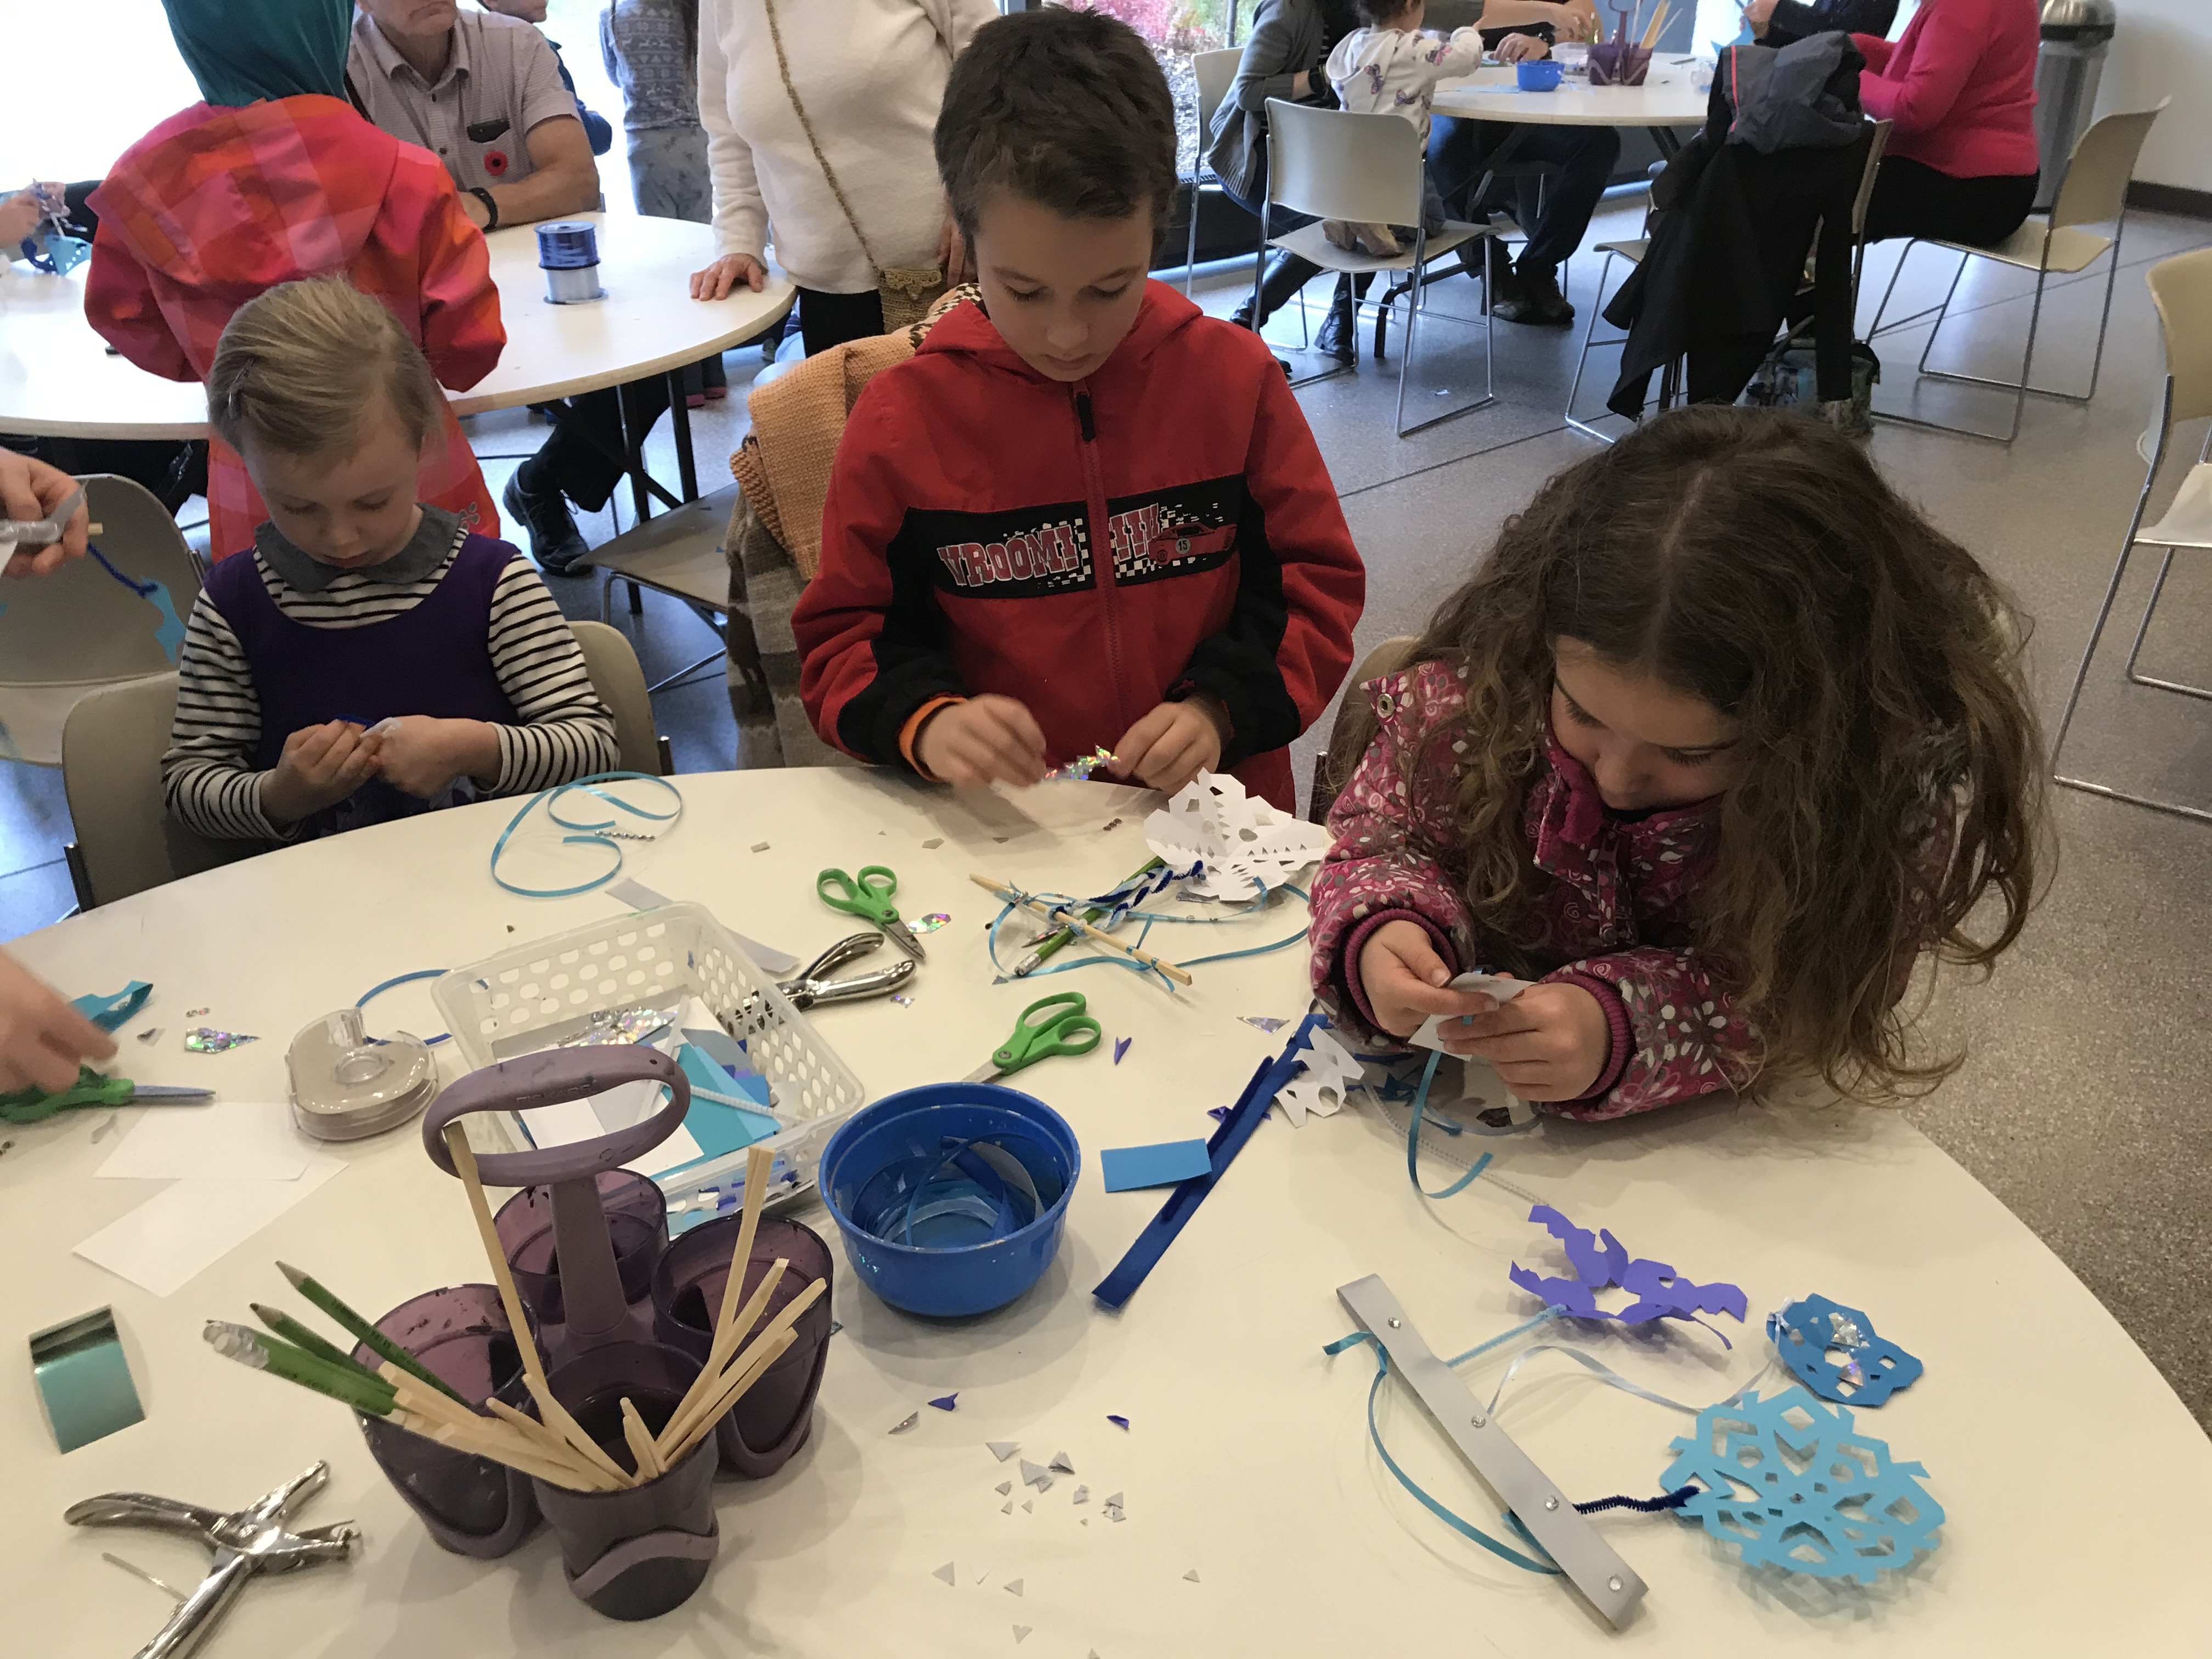 A group of children seated at a table making paper snowflakes